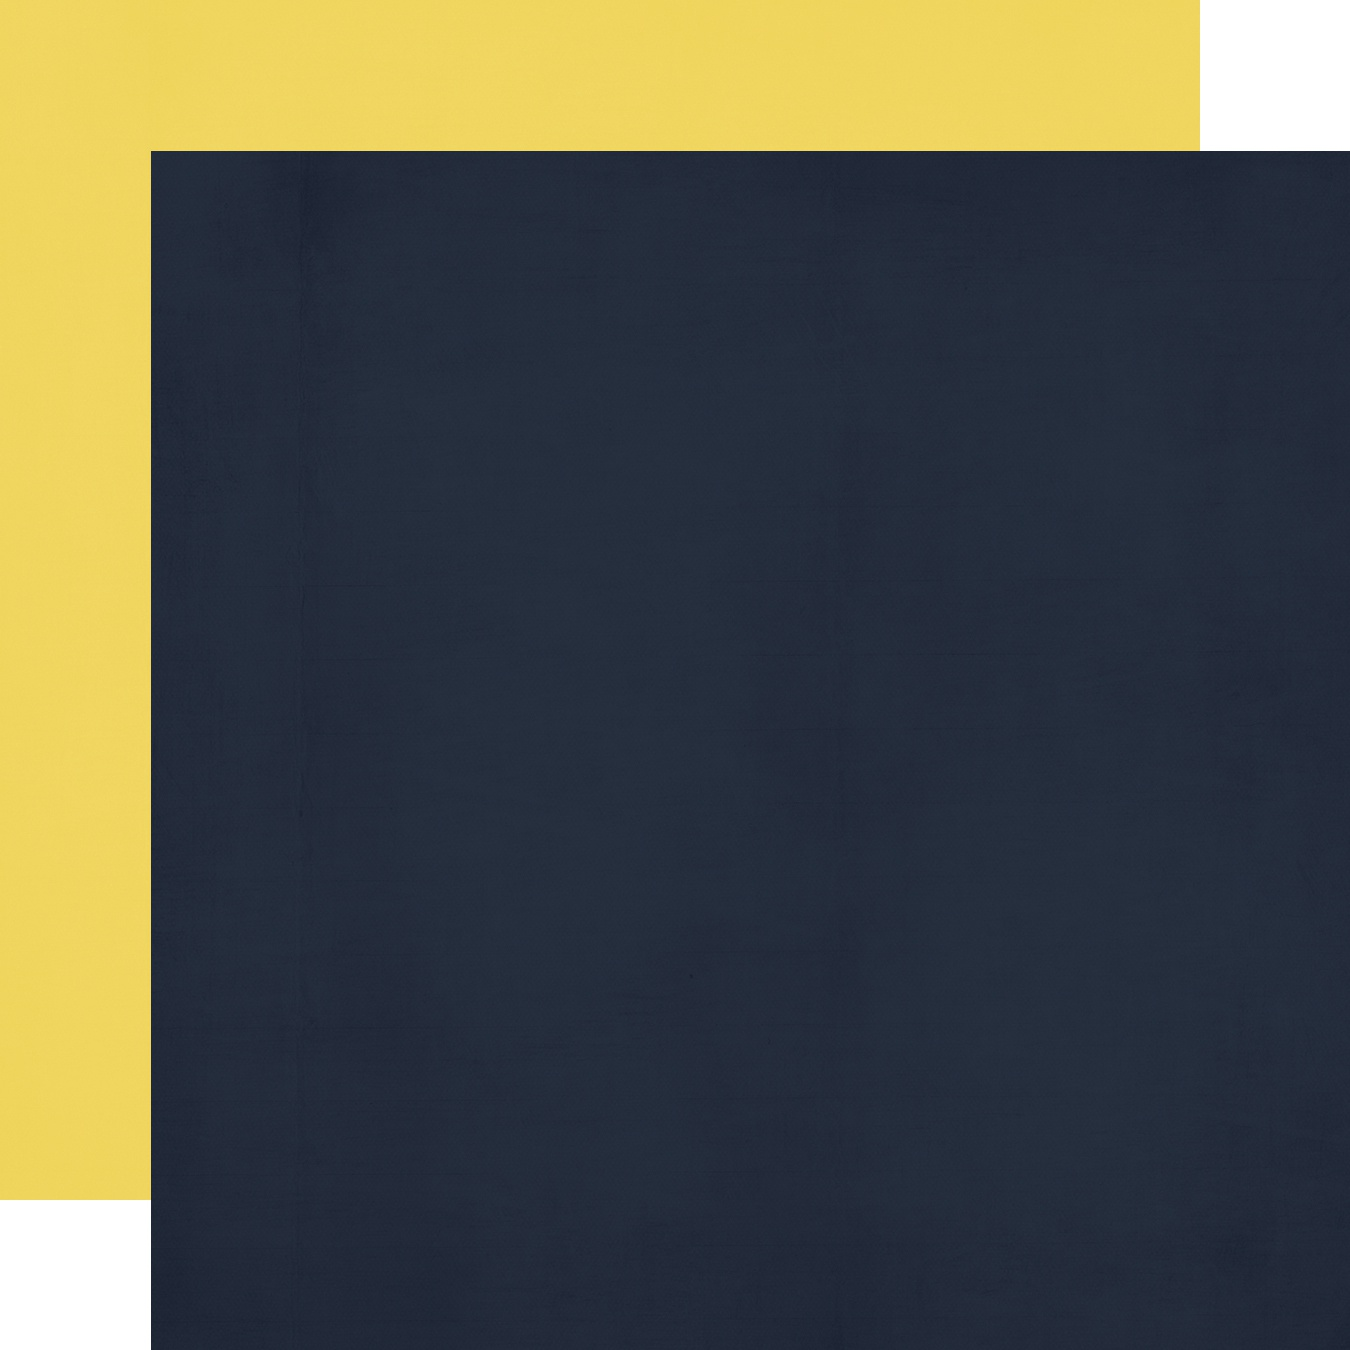 Cruisin' Double-Sided Cardstock 12X12-Navy/Yellow Simple Basic